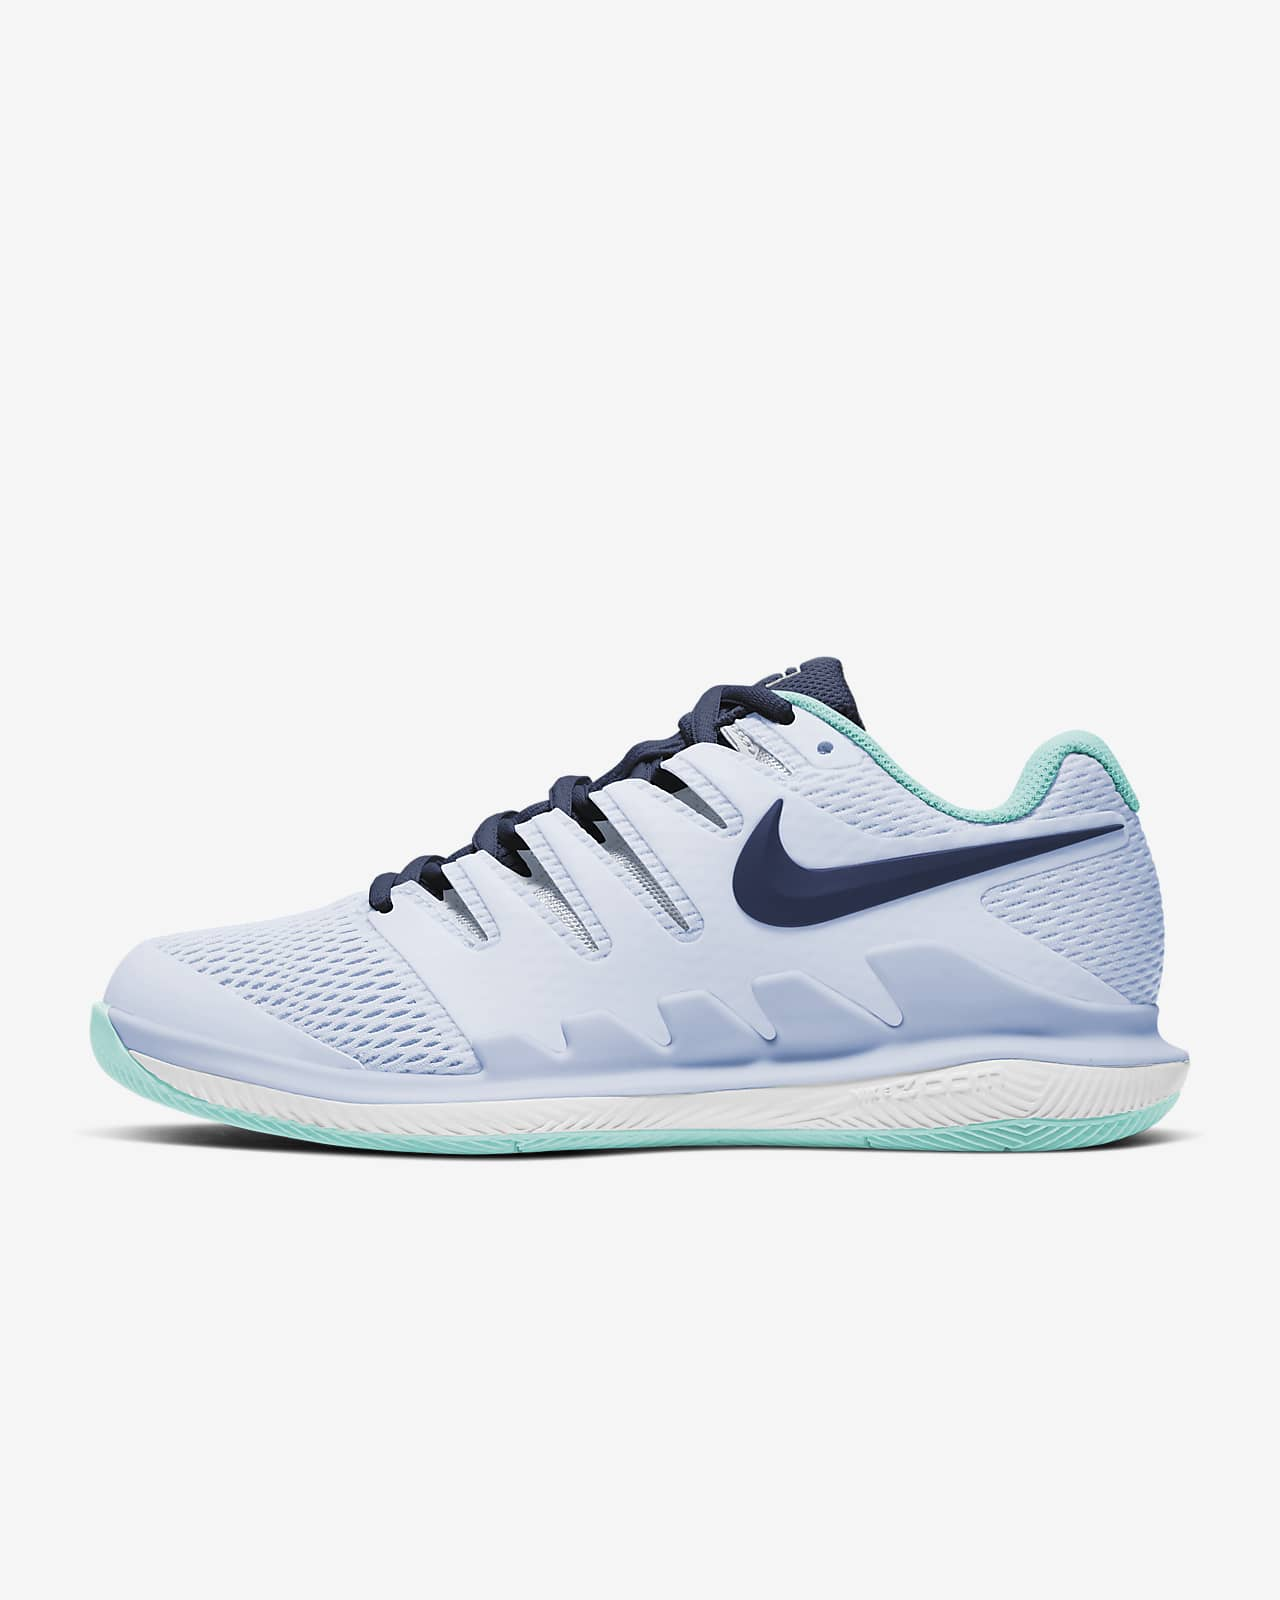 Nikecourt Air Zoom Vapor X Women S Hard Court Tennis Shoe Nike Ca